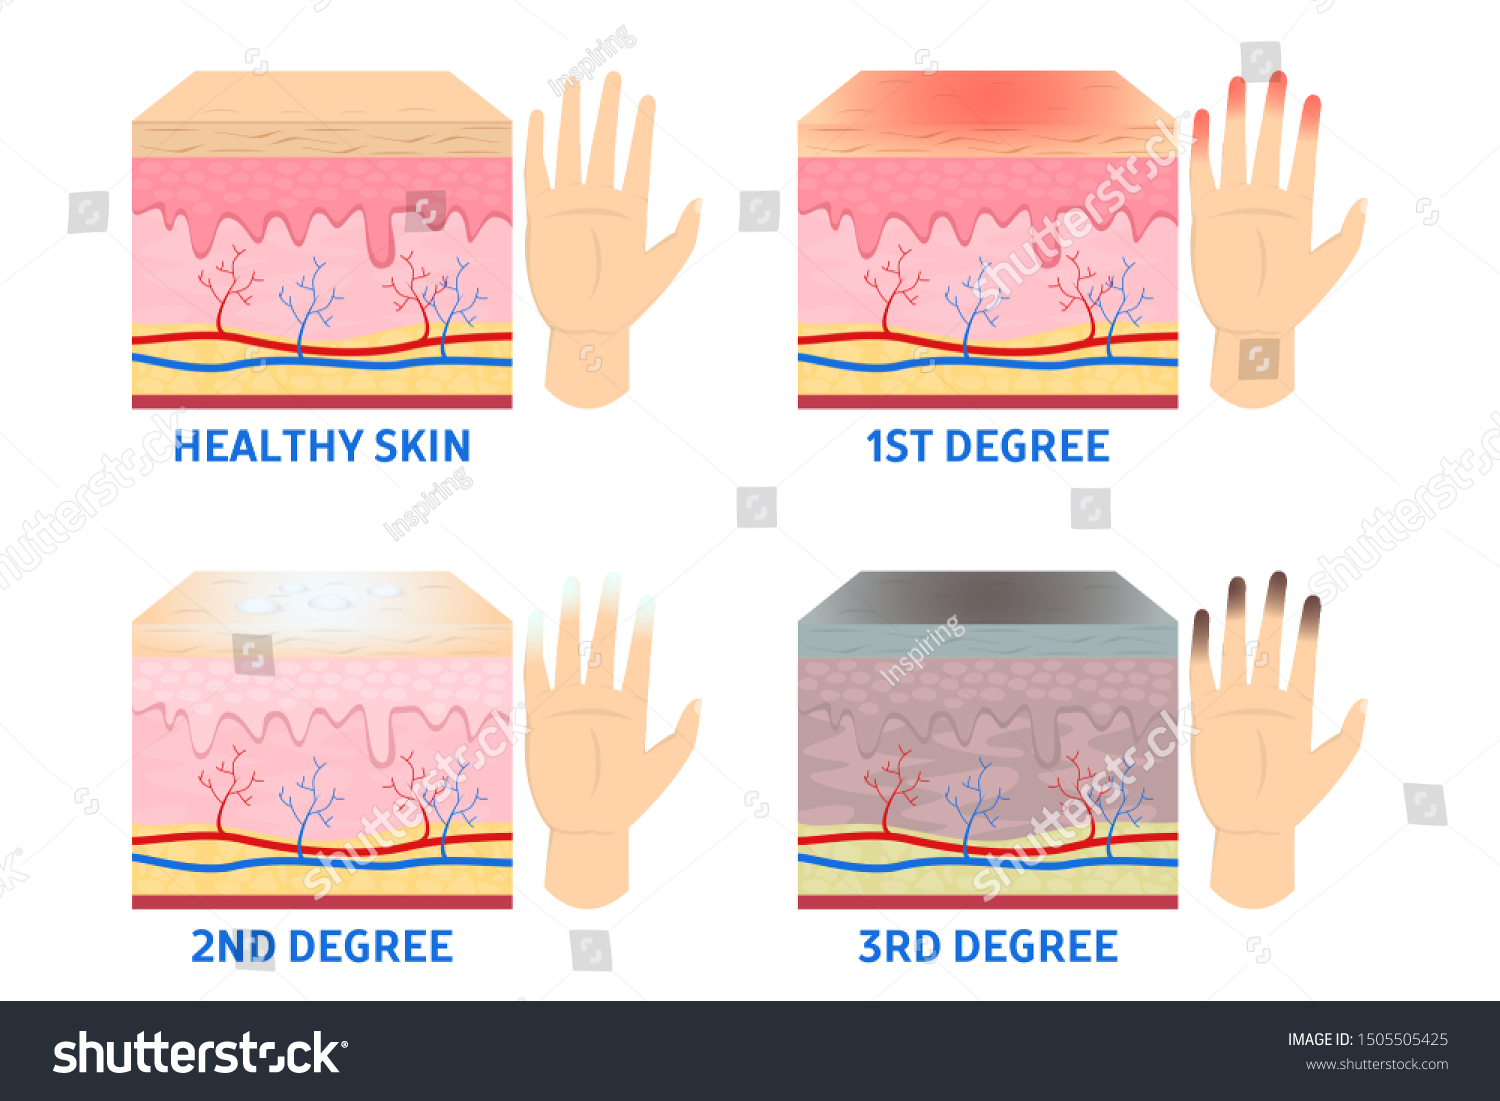 Frostbite stages. Frostbitten finger, hypothermia in cold season. Medical infographic. Blue and red fingers. Isolated vector illustration in cartoon style